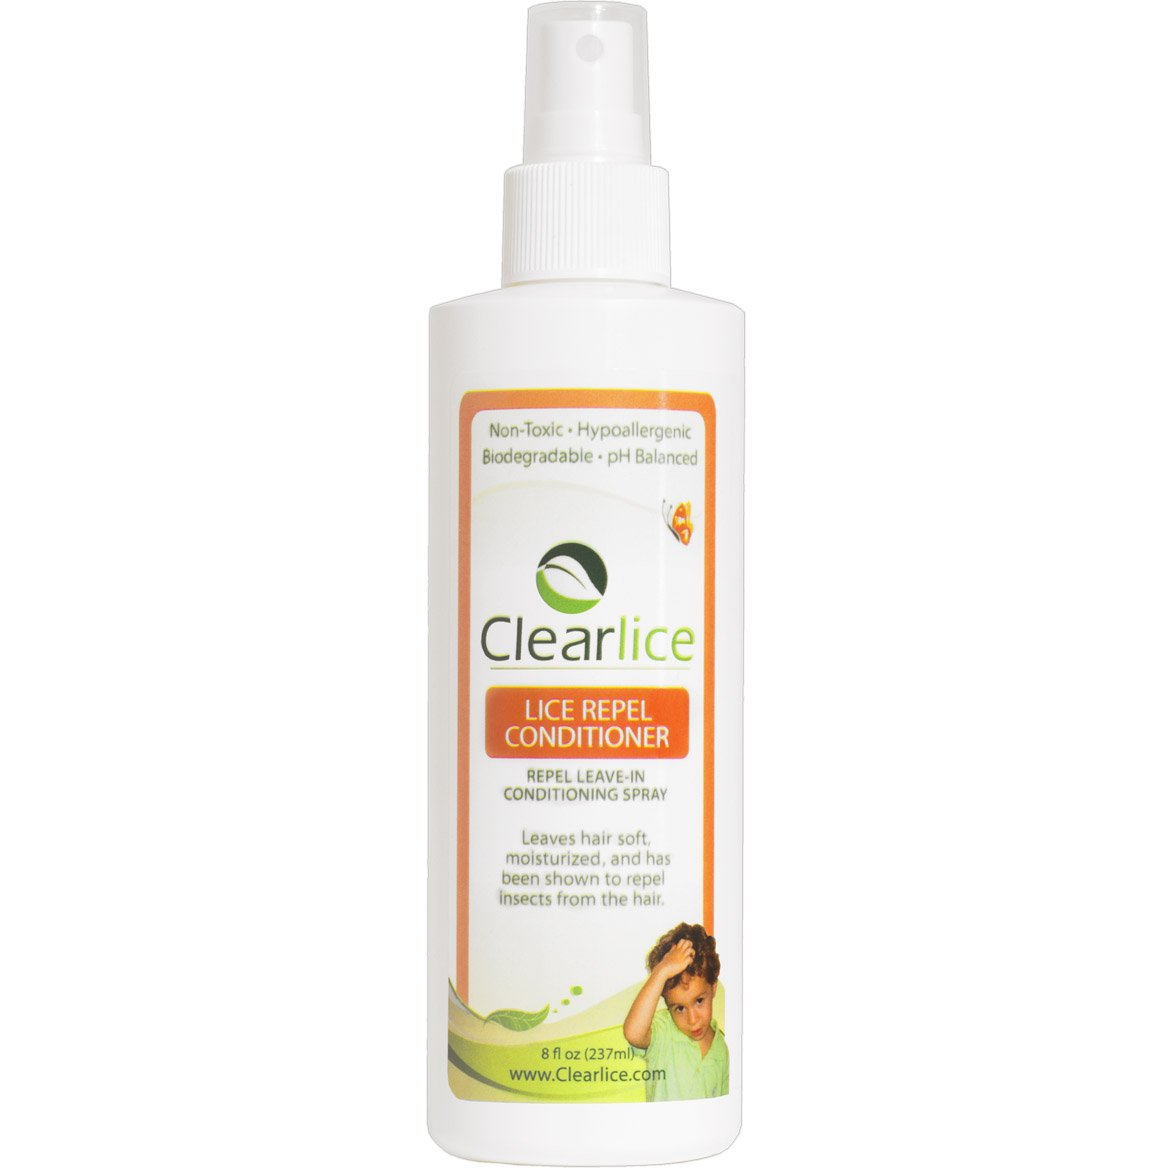 CLEARLICE REPEL & PREVENTION CONDITIONER - #1 EVERY DAY CONDITIONER TO PREVENT YOUR CHICLD FROM CATCHING LICE - Natural, Gentle, & Effective - Kids Love the Fresh Peppermint Smell - Lice Hate It